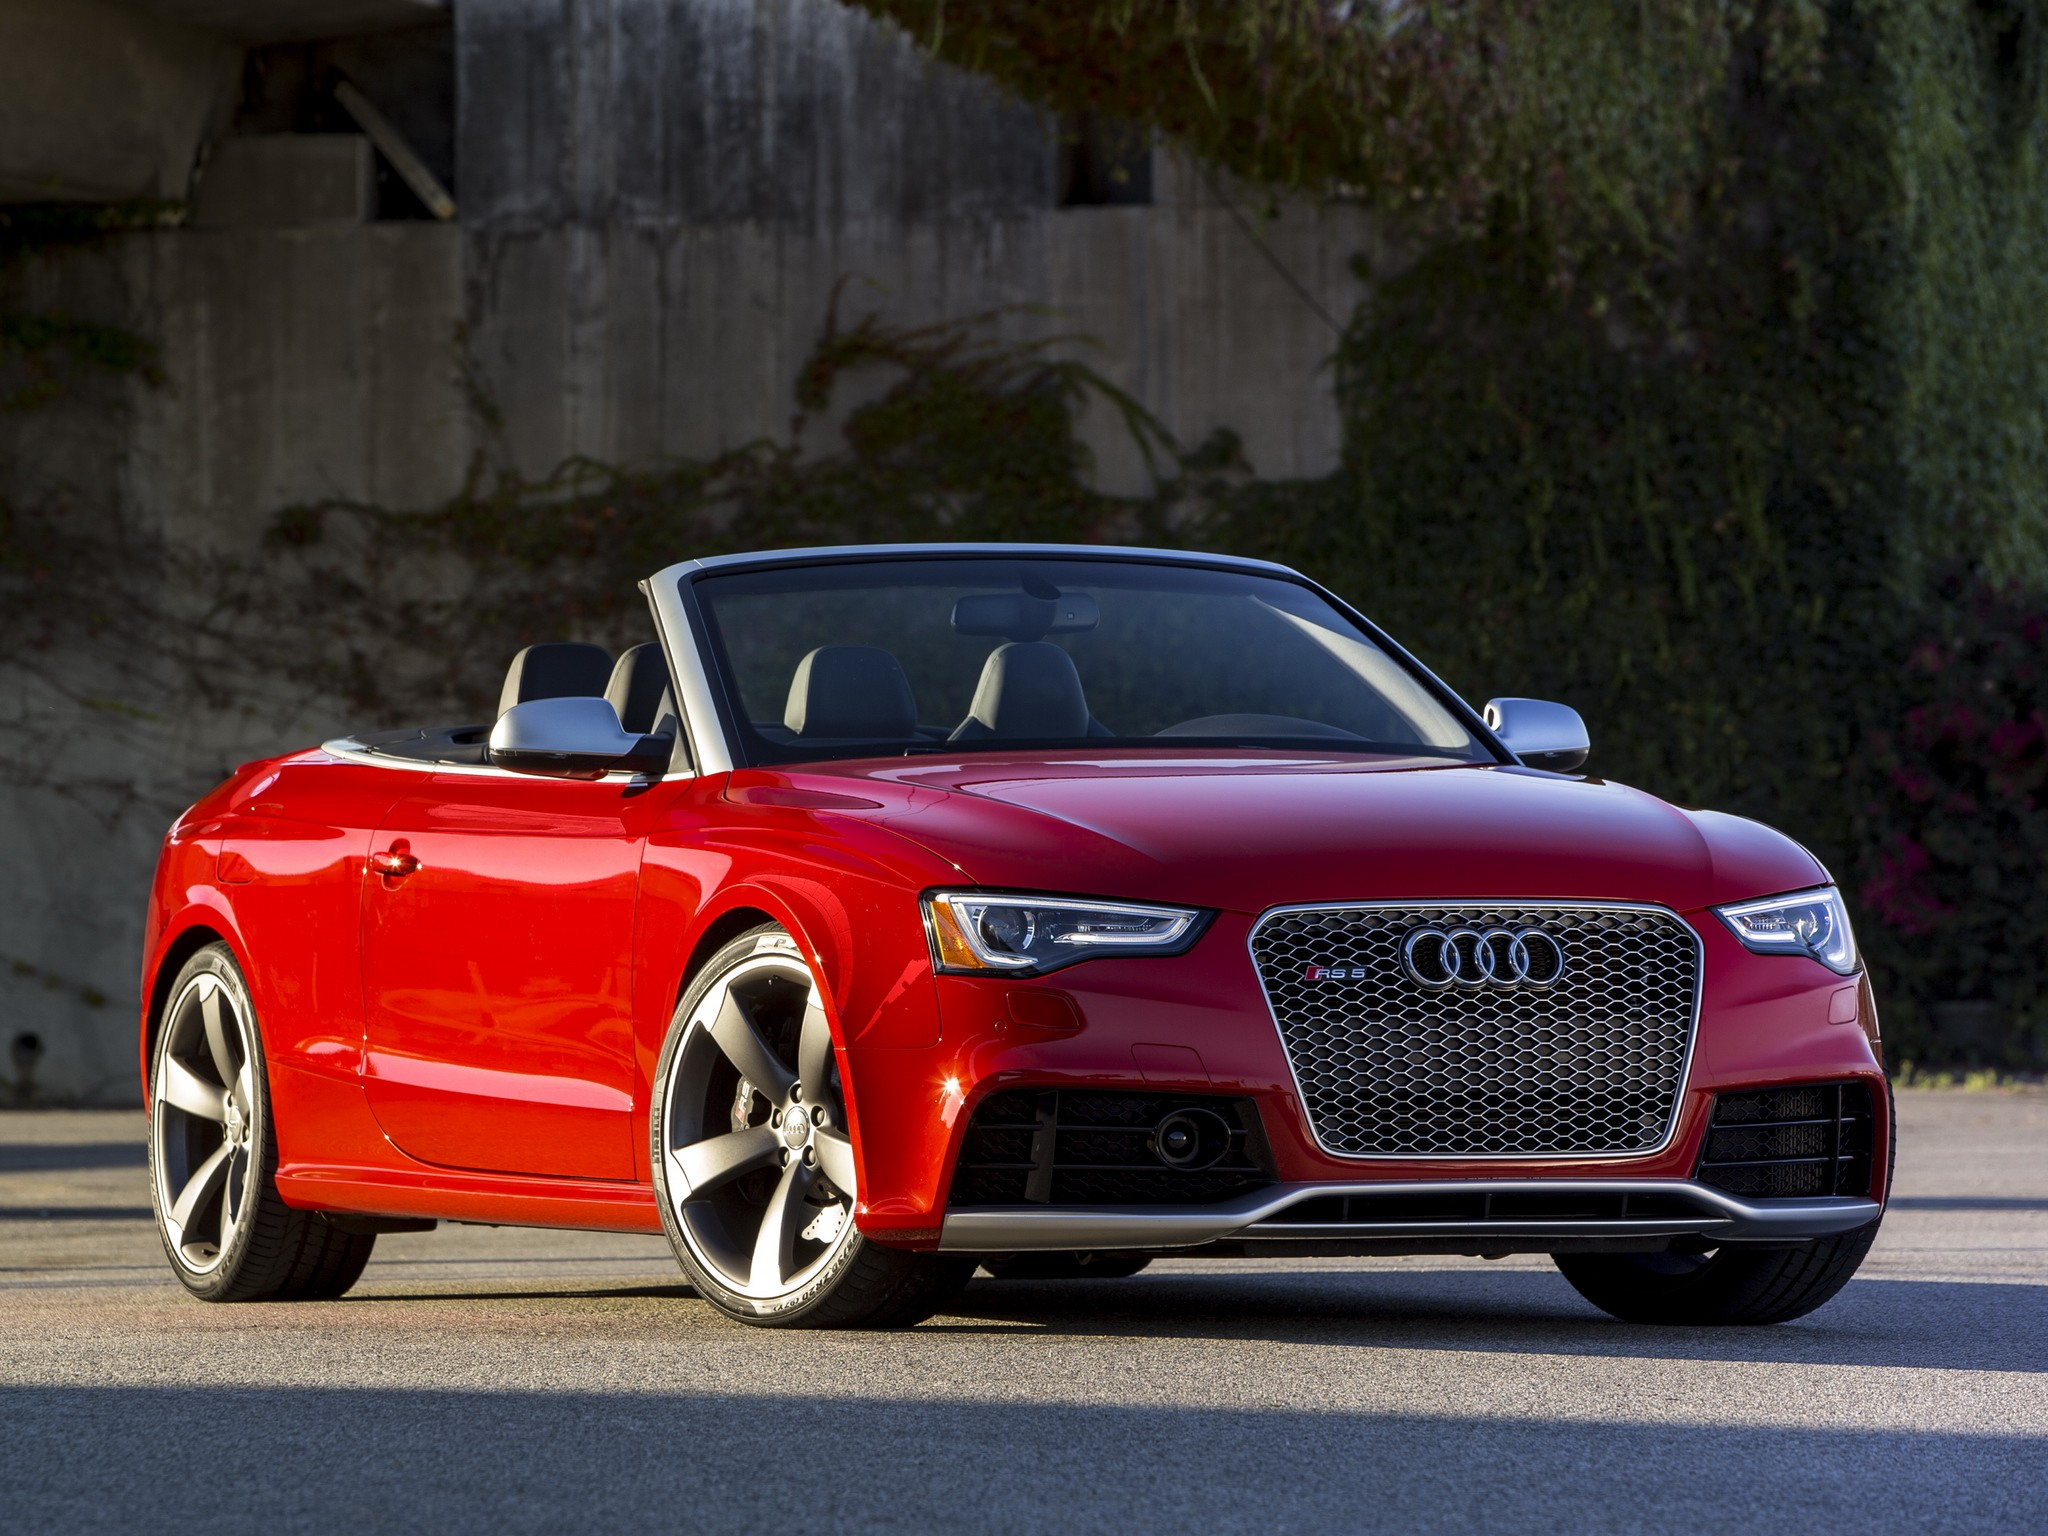 audi rs5 cabriolet specs 2013 2014 2015 2016 2017 2018 autoevolution. Black Bedroom Furniture Sets. Home Design Ideas